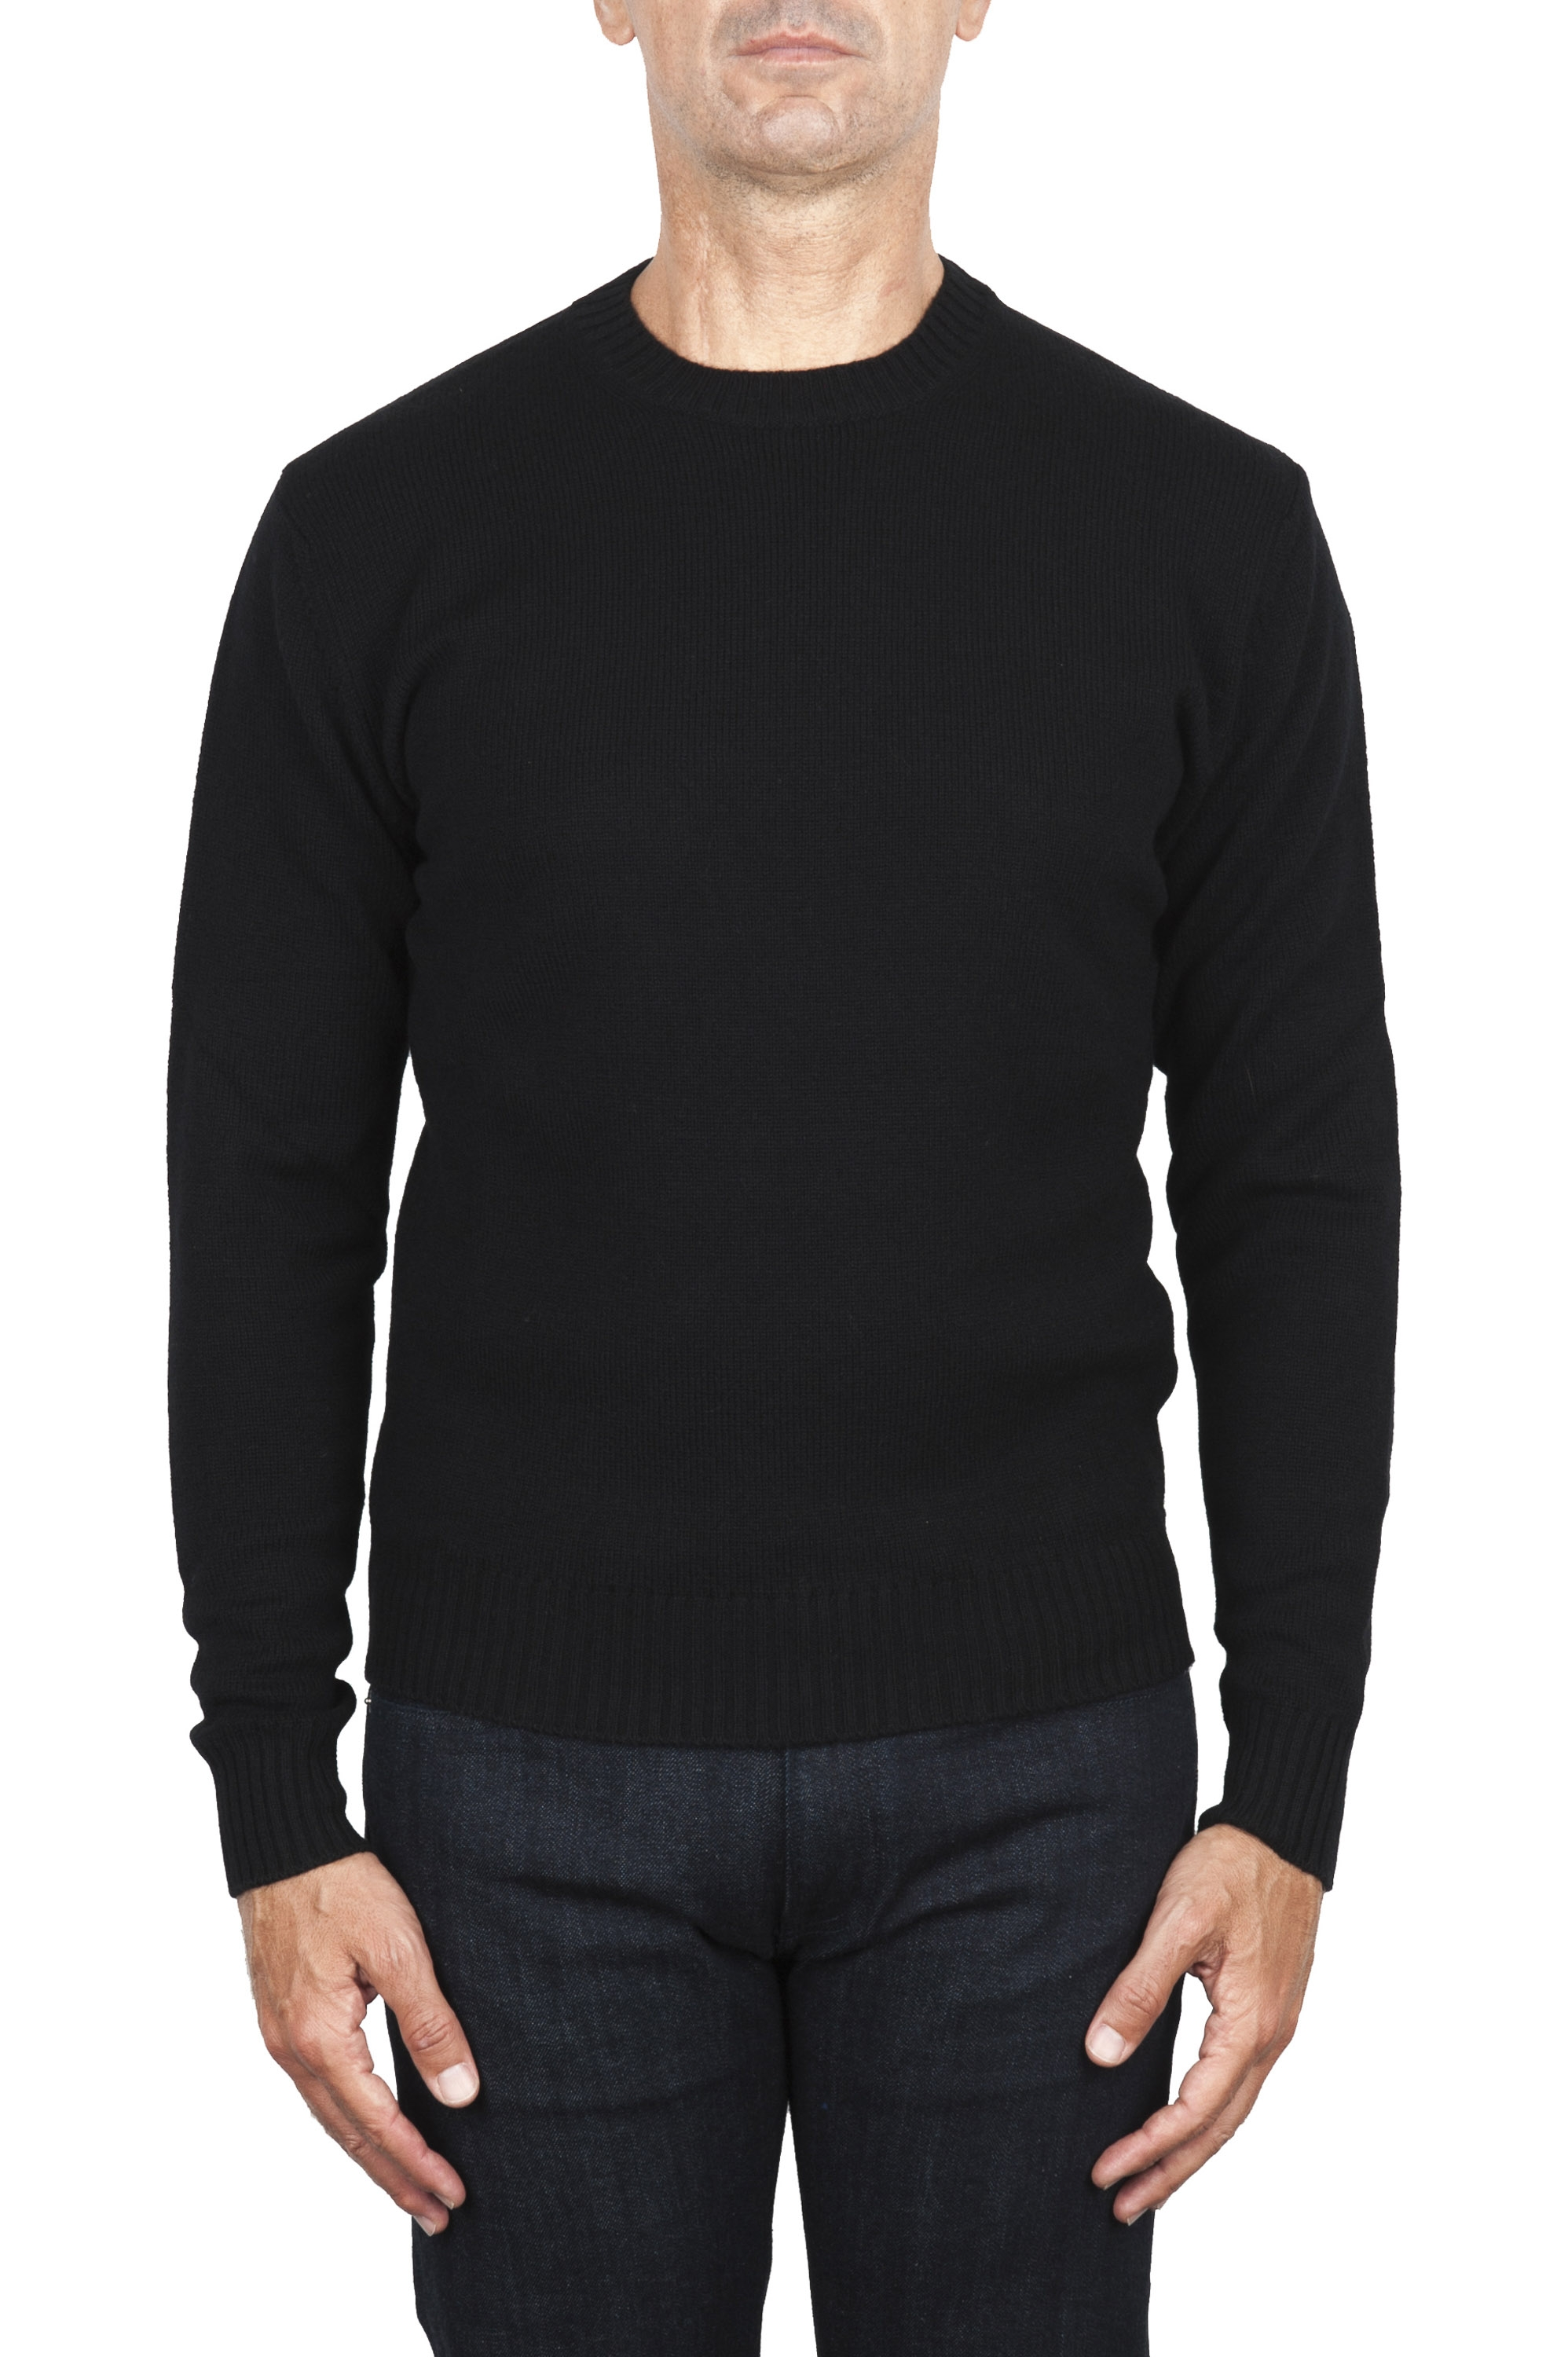 SBU 03000_2020AW Black wool and cashmere blend crew neck sweater 01